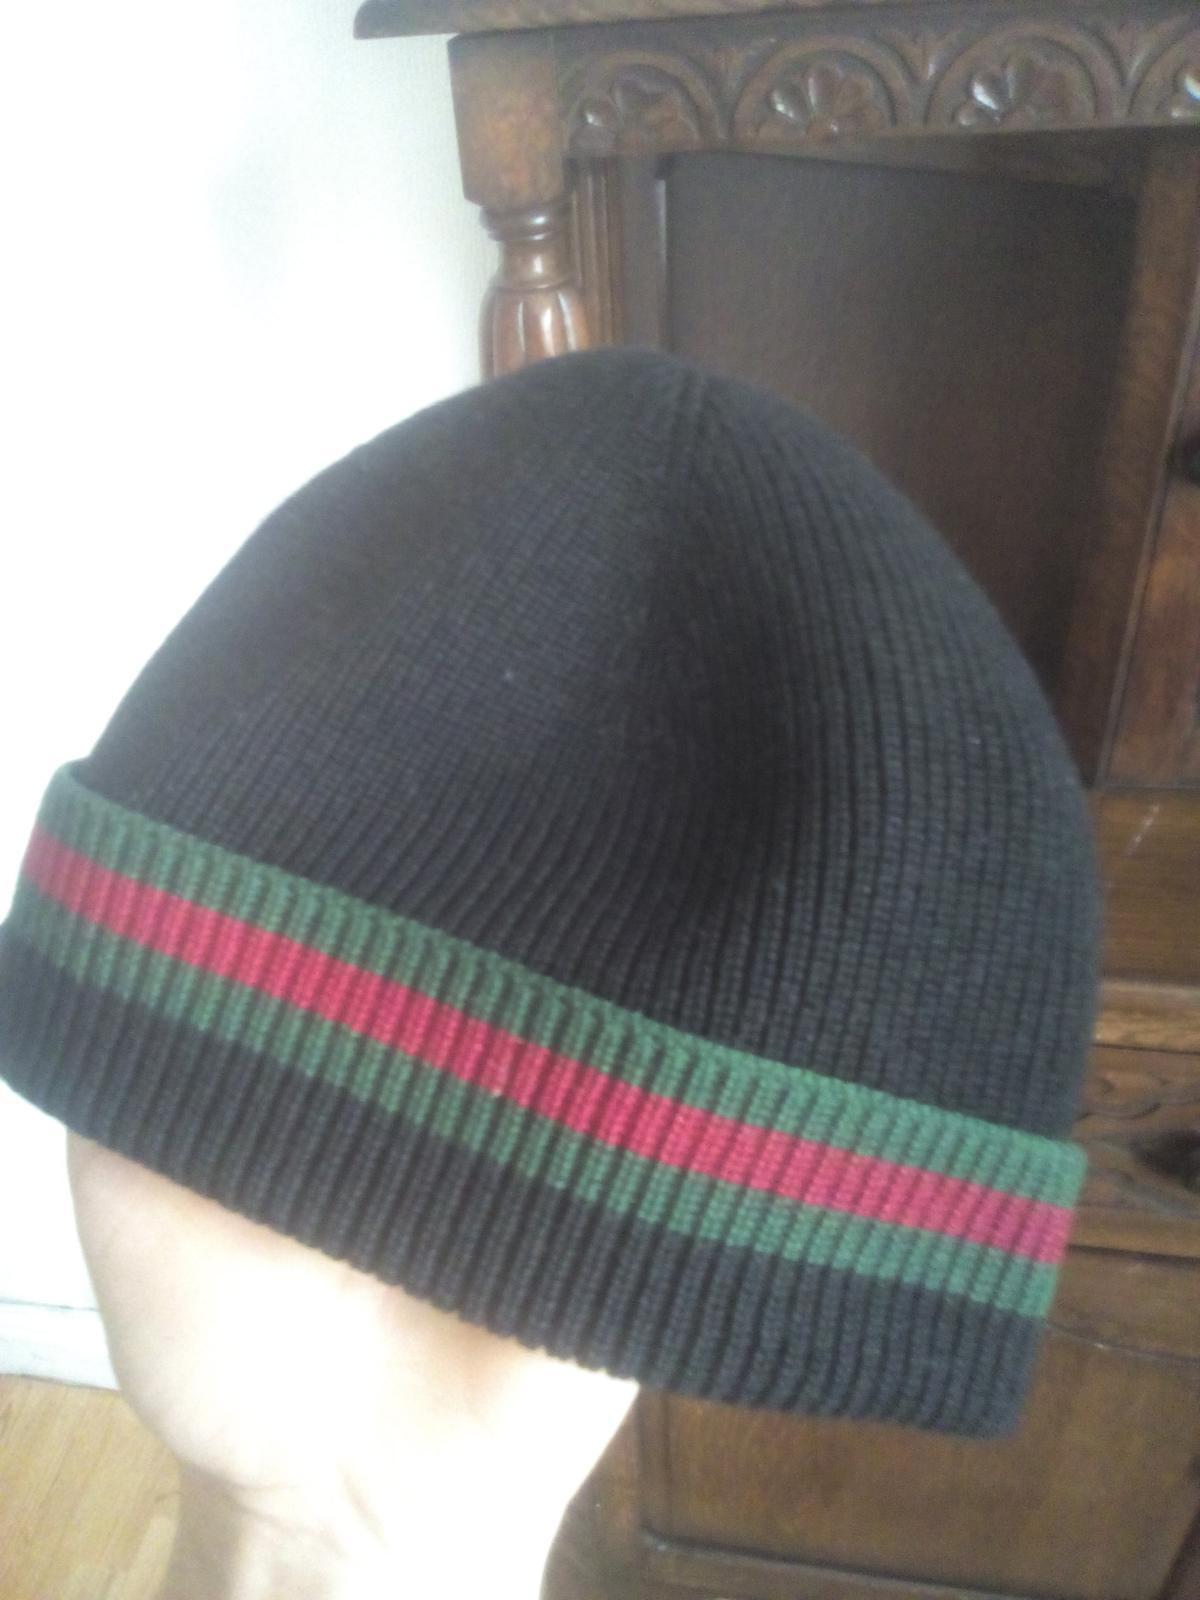 260c9b451 Gucci Beanie Hat in M16 Stretford for £40.00 for sale - Shpock